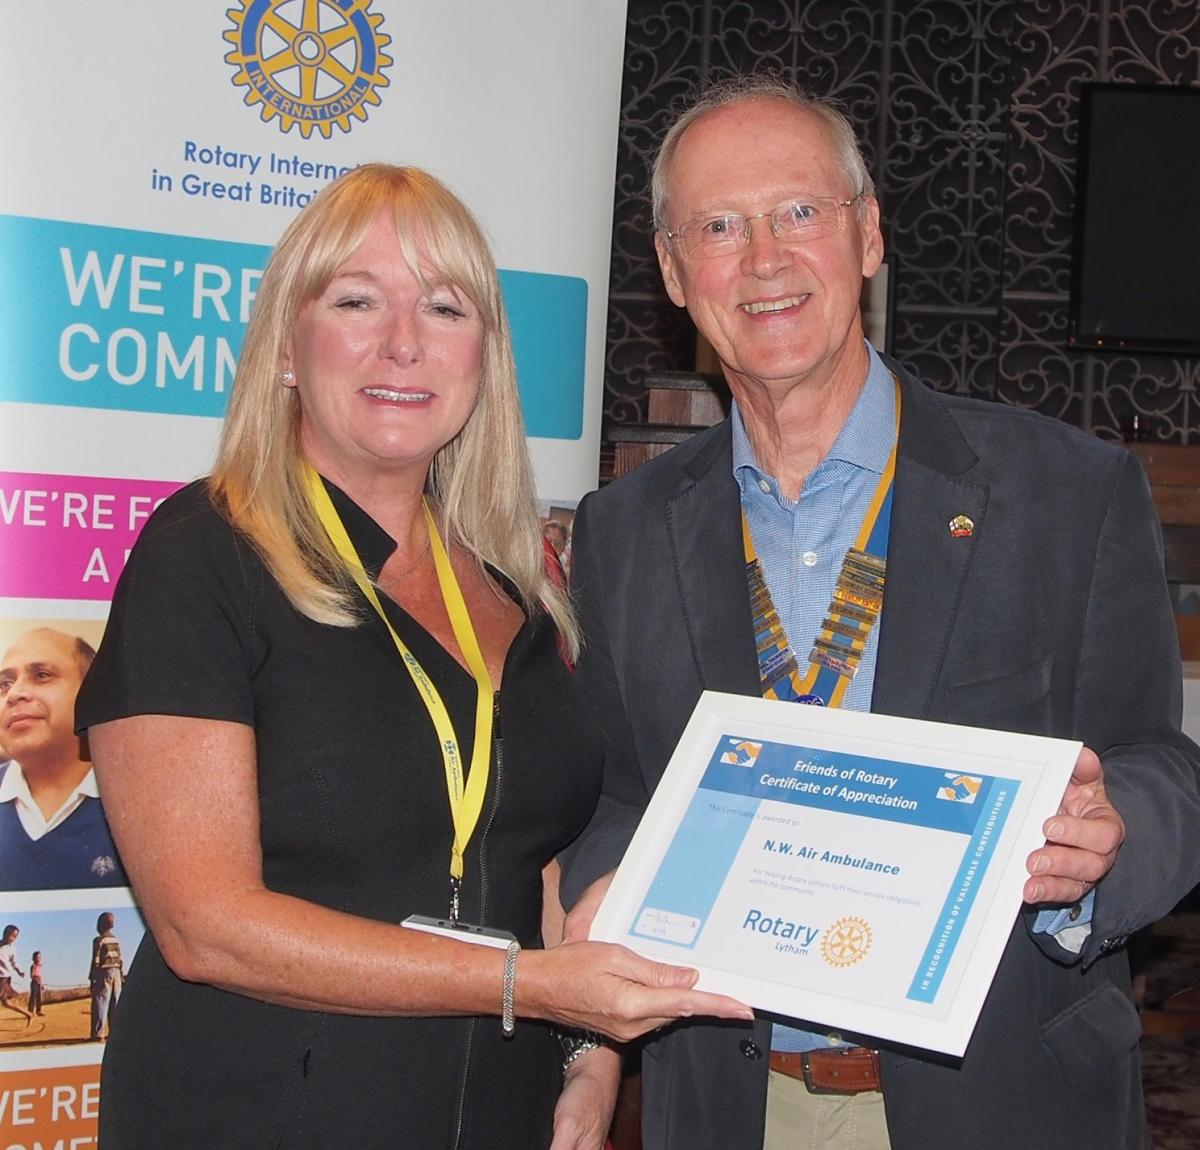 Lytham Rotary celebrates - NW Air Ambulance's Lynne Whittaker